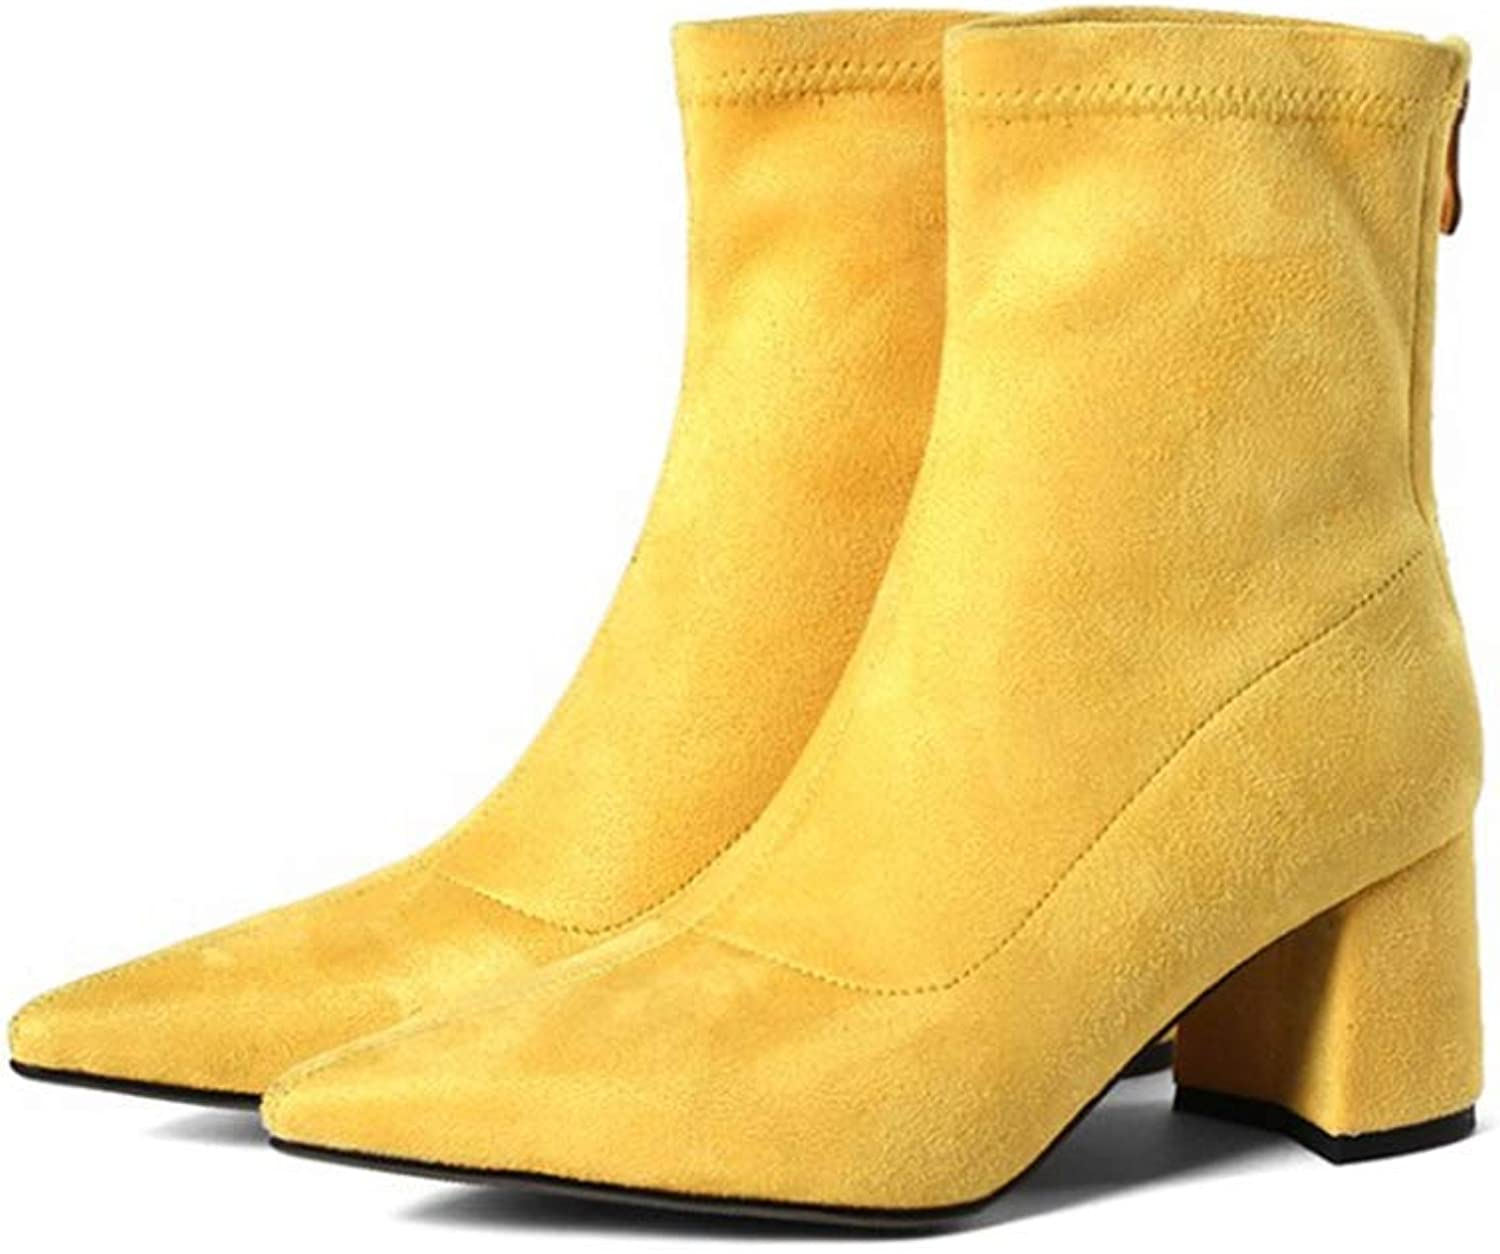 T-JULY Women Mid Calf Boots Yellow color Pointed Toe Zippers Autumn Spring Fashion Martin Casual shoes